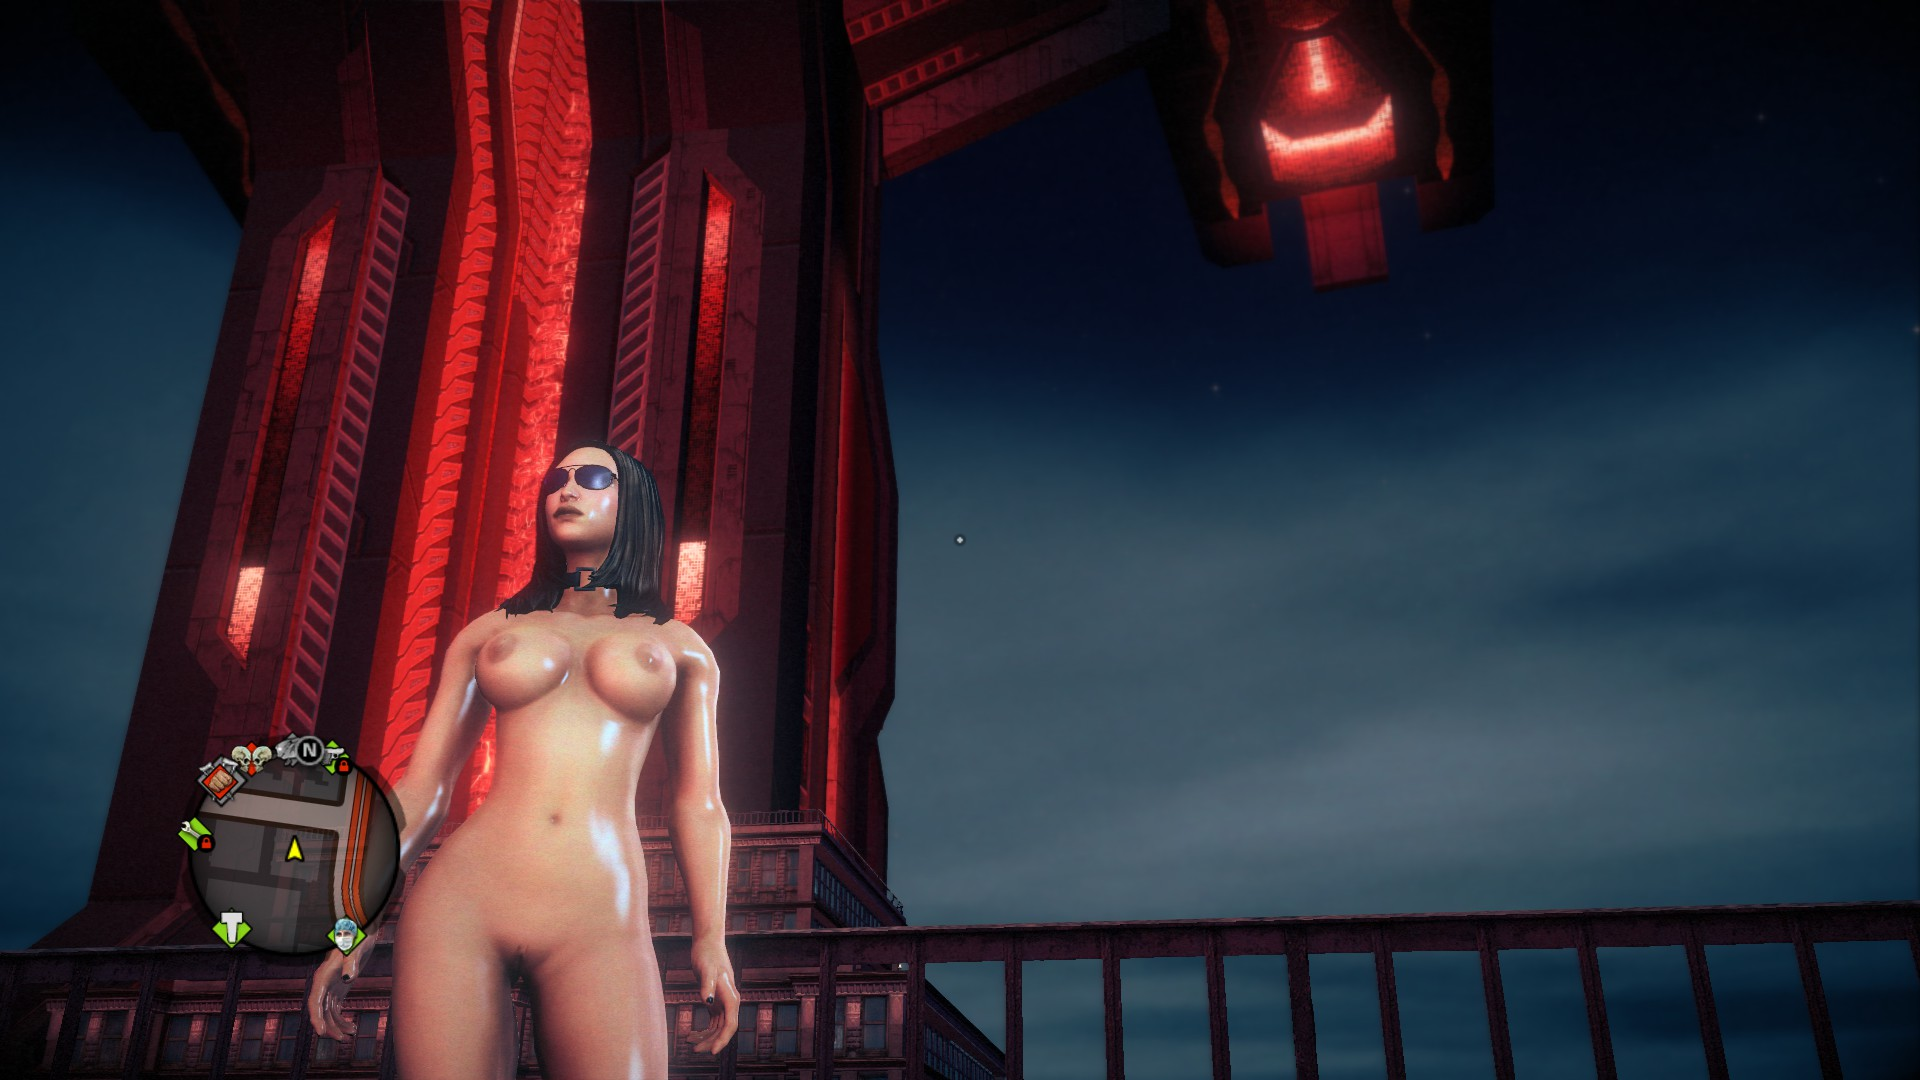 Saints row 2 porn naked strippers adult picture